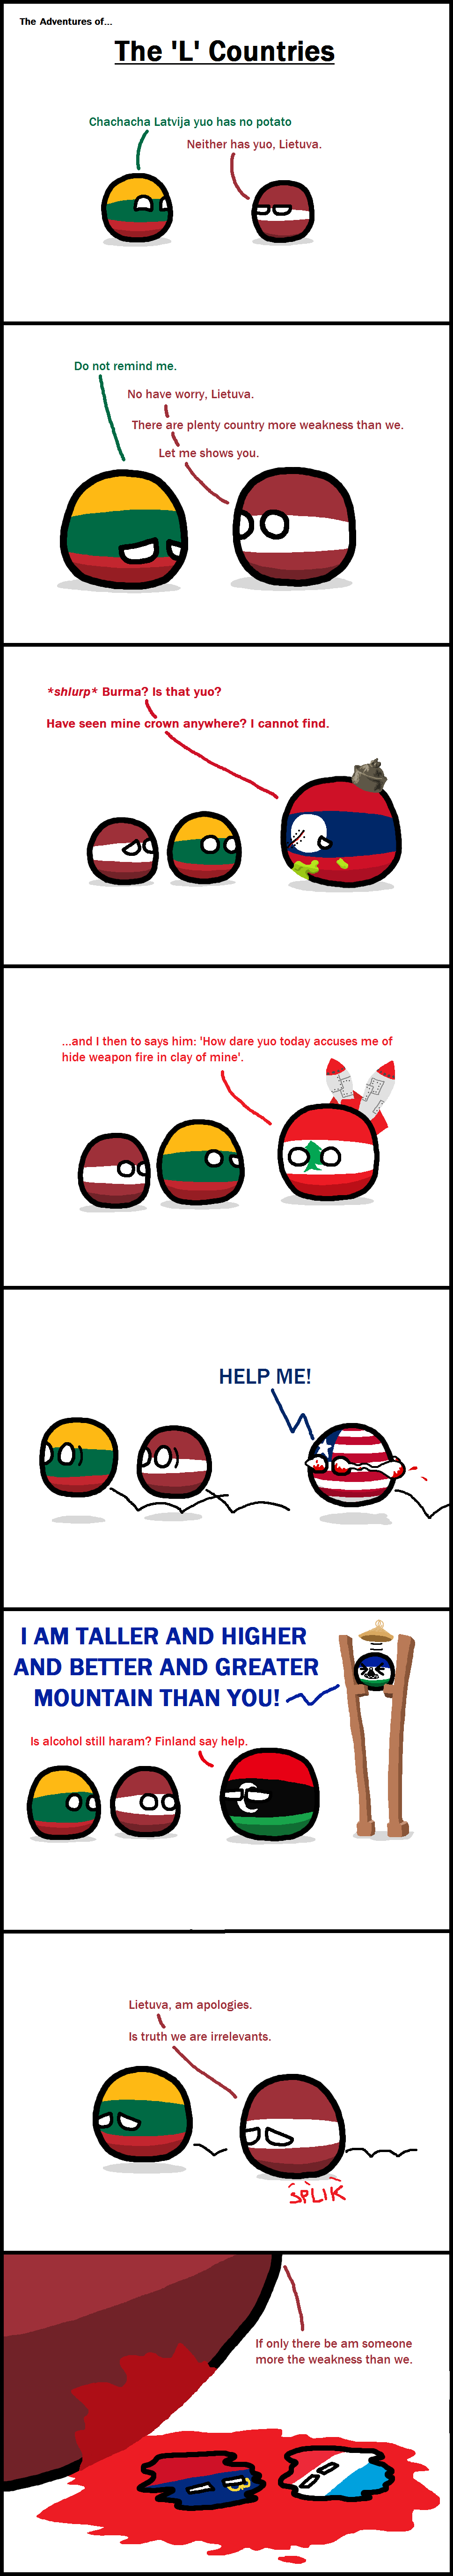 The Adventures of the 'L' Countries